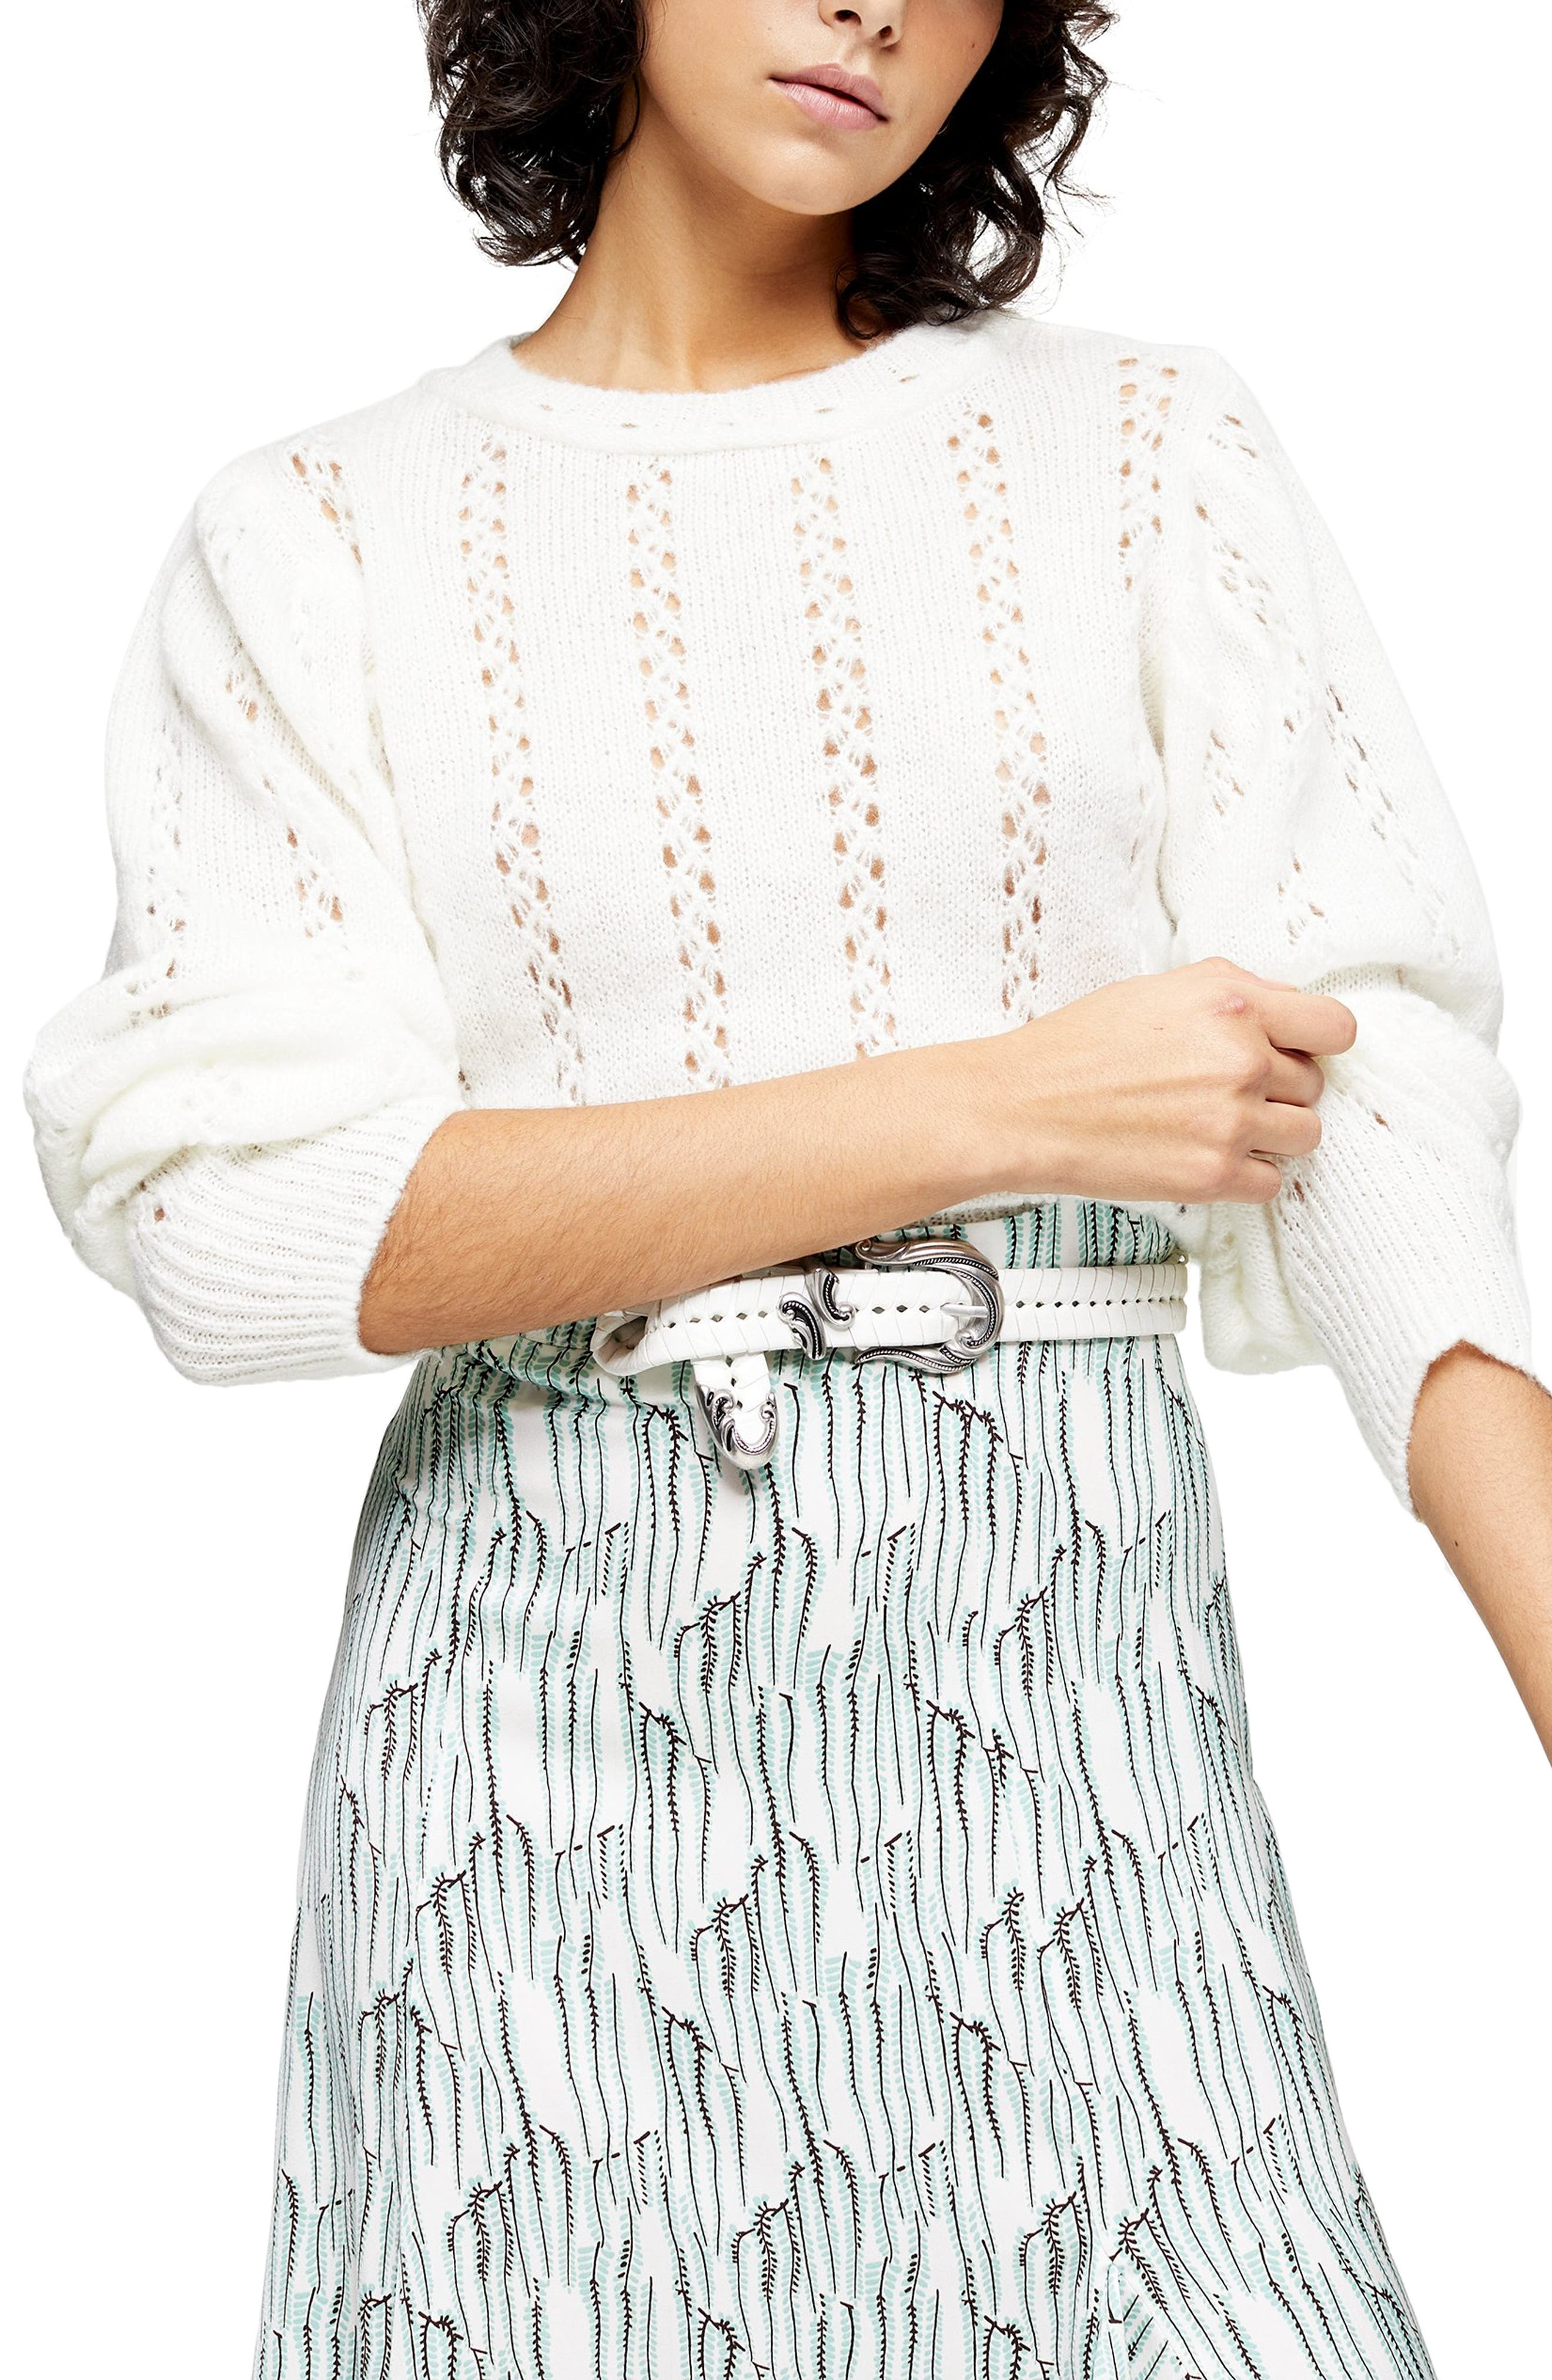 Vintage Sweaters – 1910s, 1920s, 1930s Pictures Womens Topshop Idol Pointelle Crop Sweater $27.98 AT vintagedancer.com